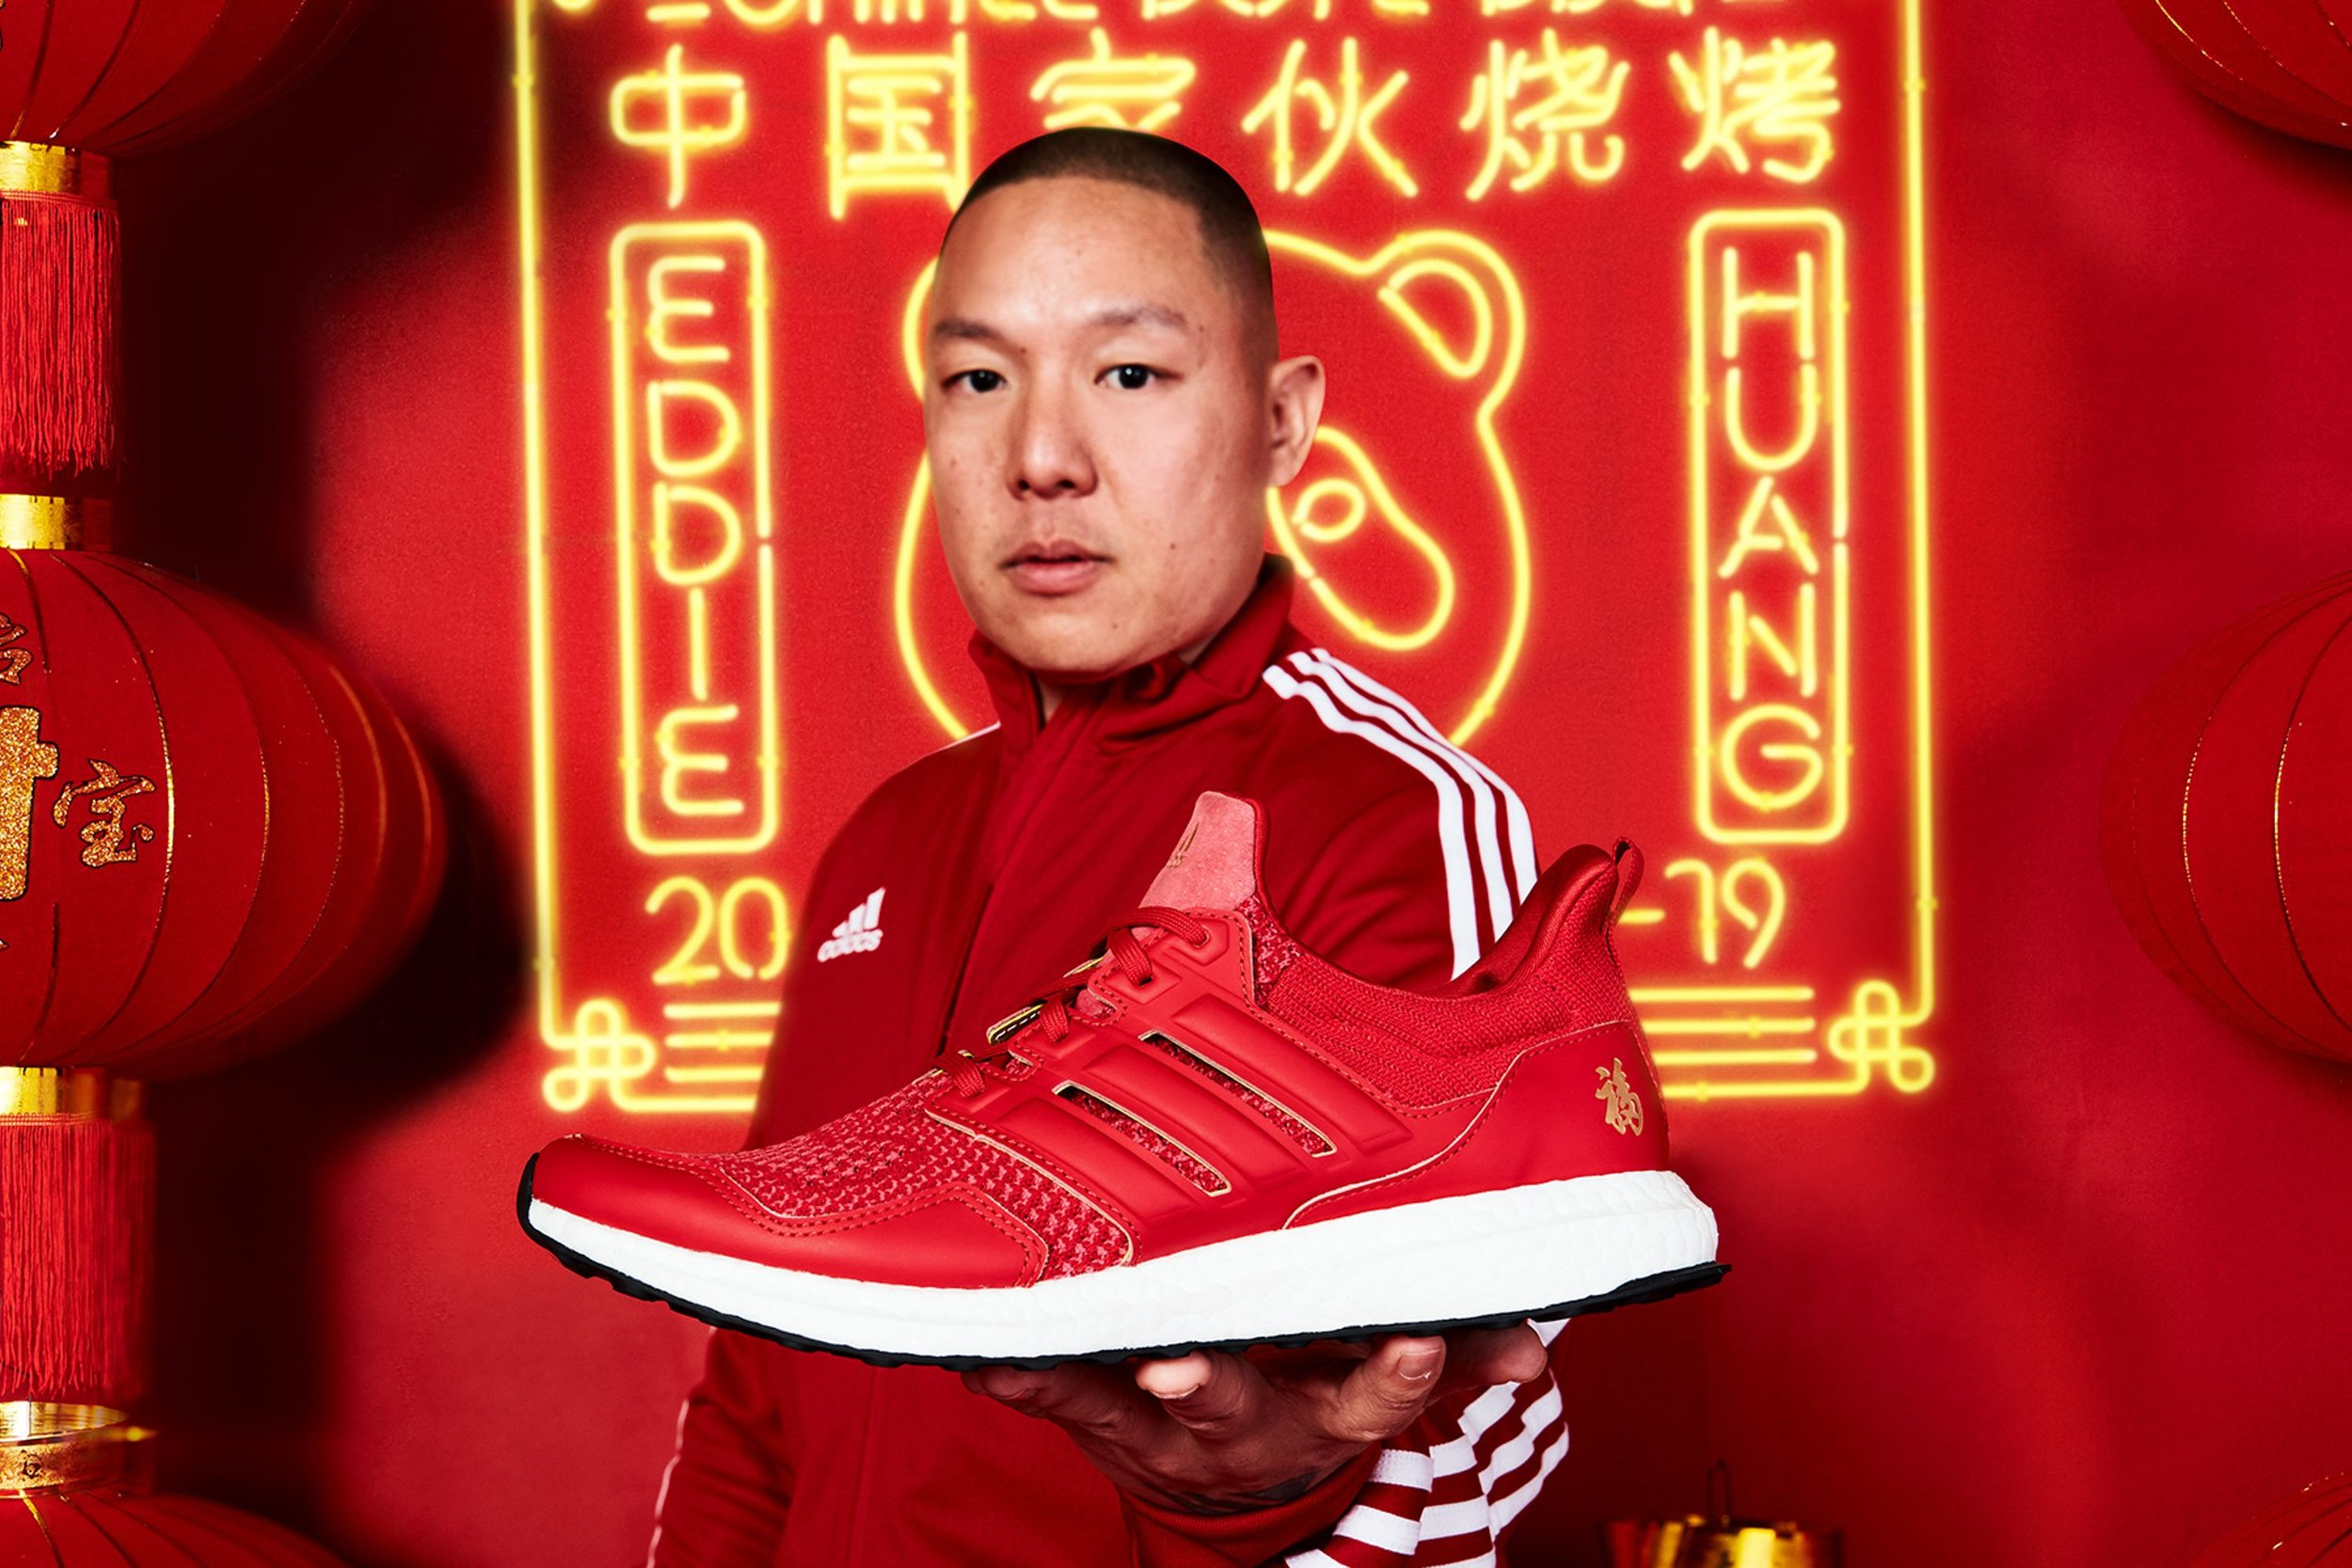 Eddie_Huang_for_adidas_Ultraboost_Chinese_New_Year_Sneaker_politics_-8.jpg